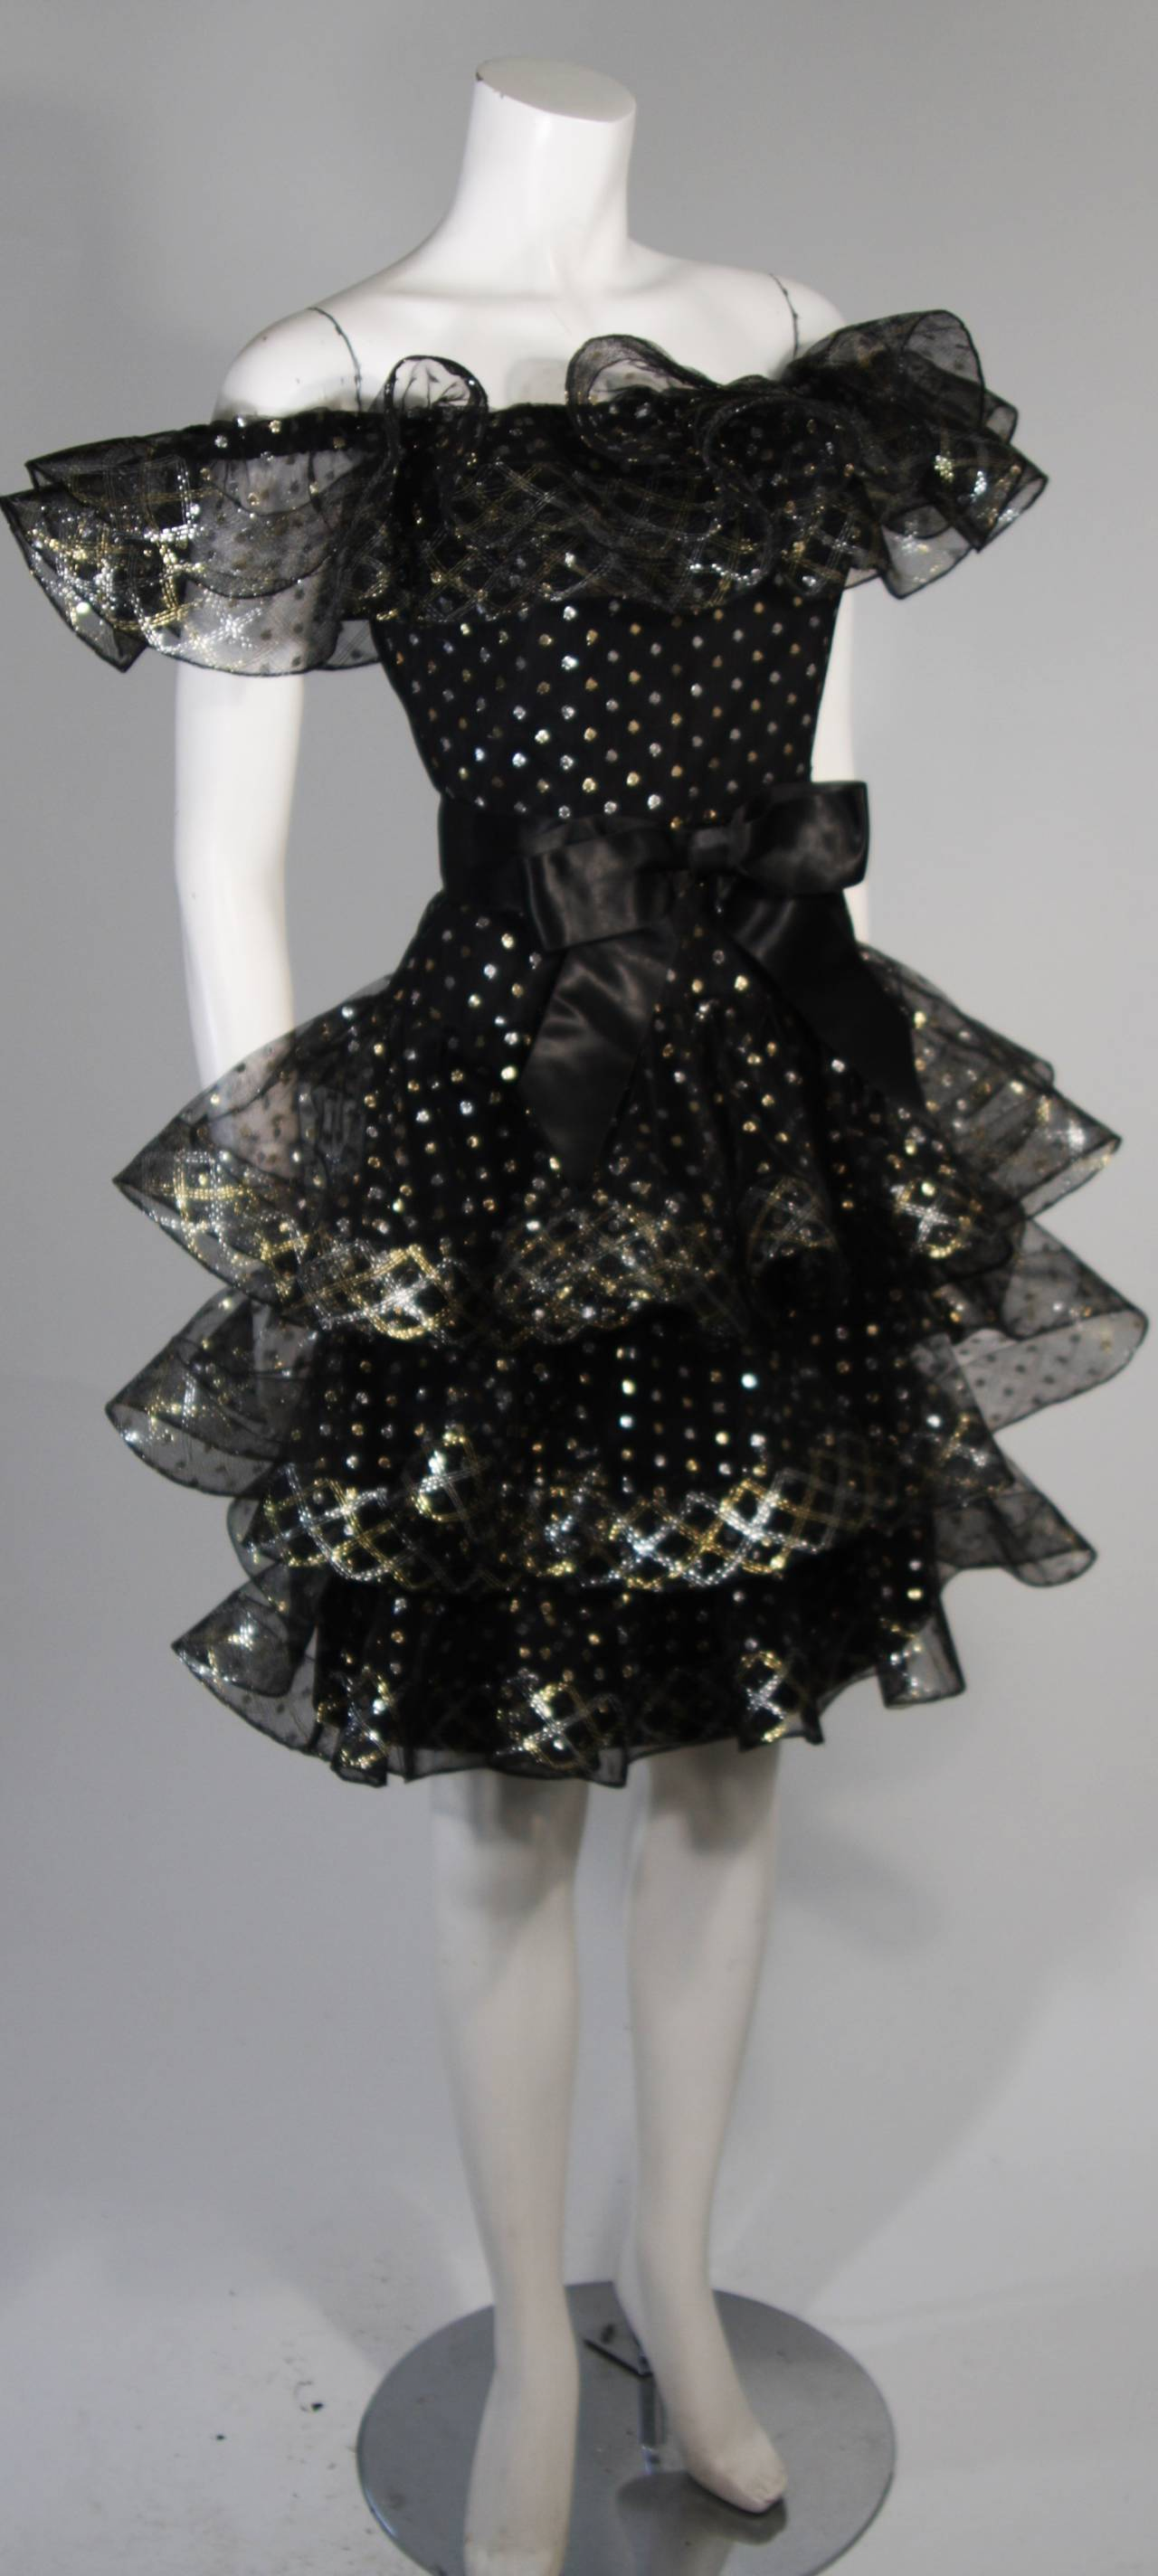 Victor Costa Black with Gold and Silver Metallic Accents Cocktail Dress Size 2 For Sale 1